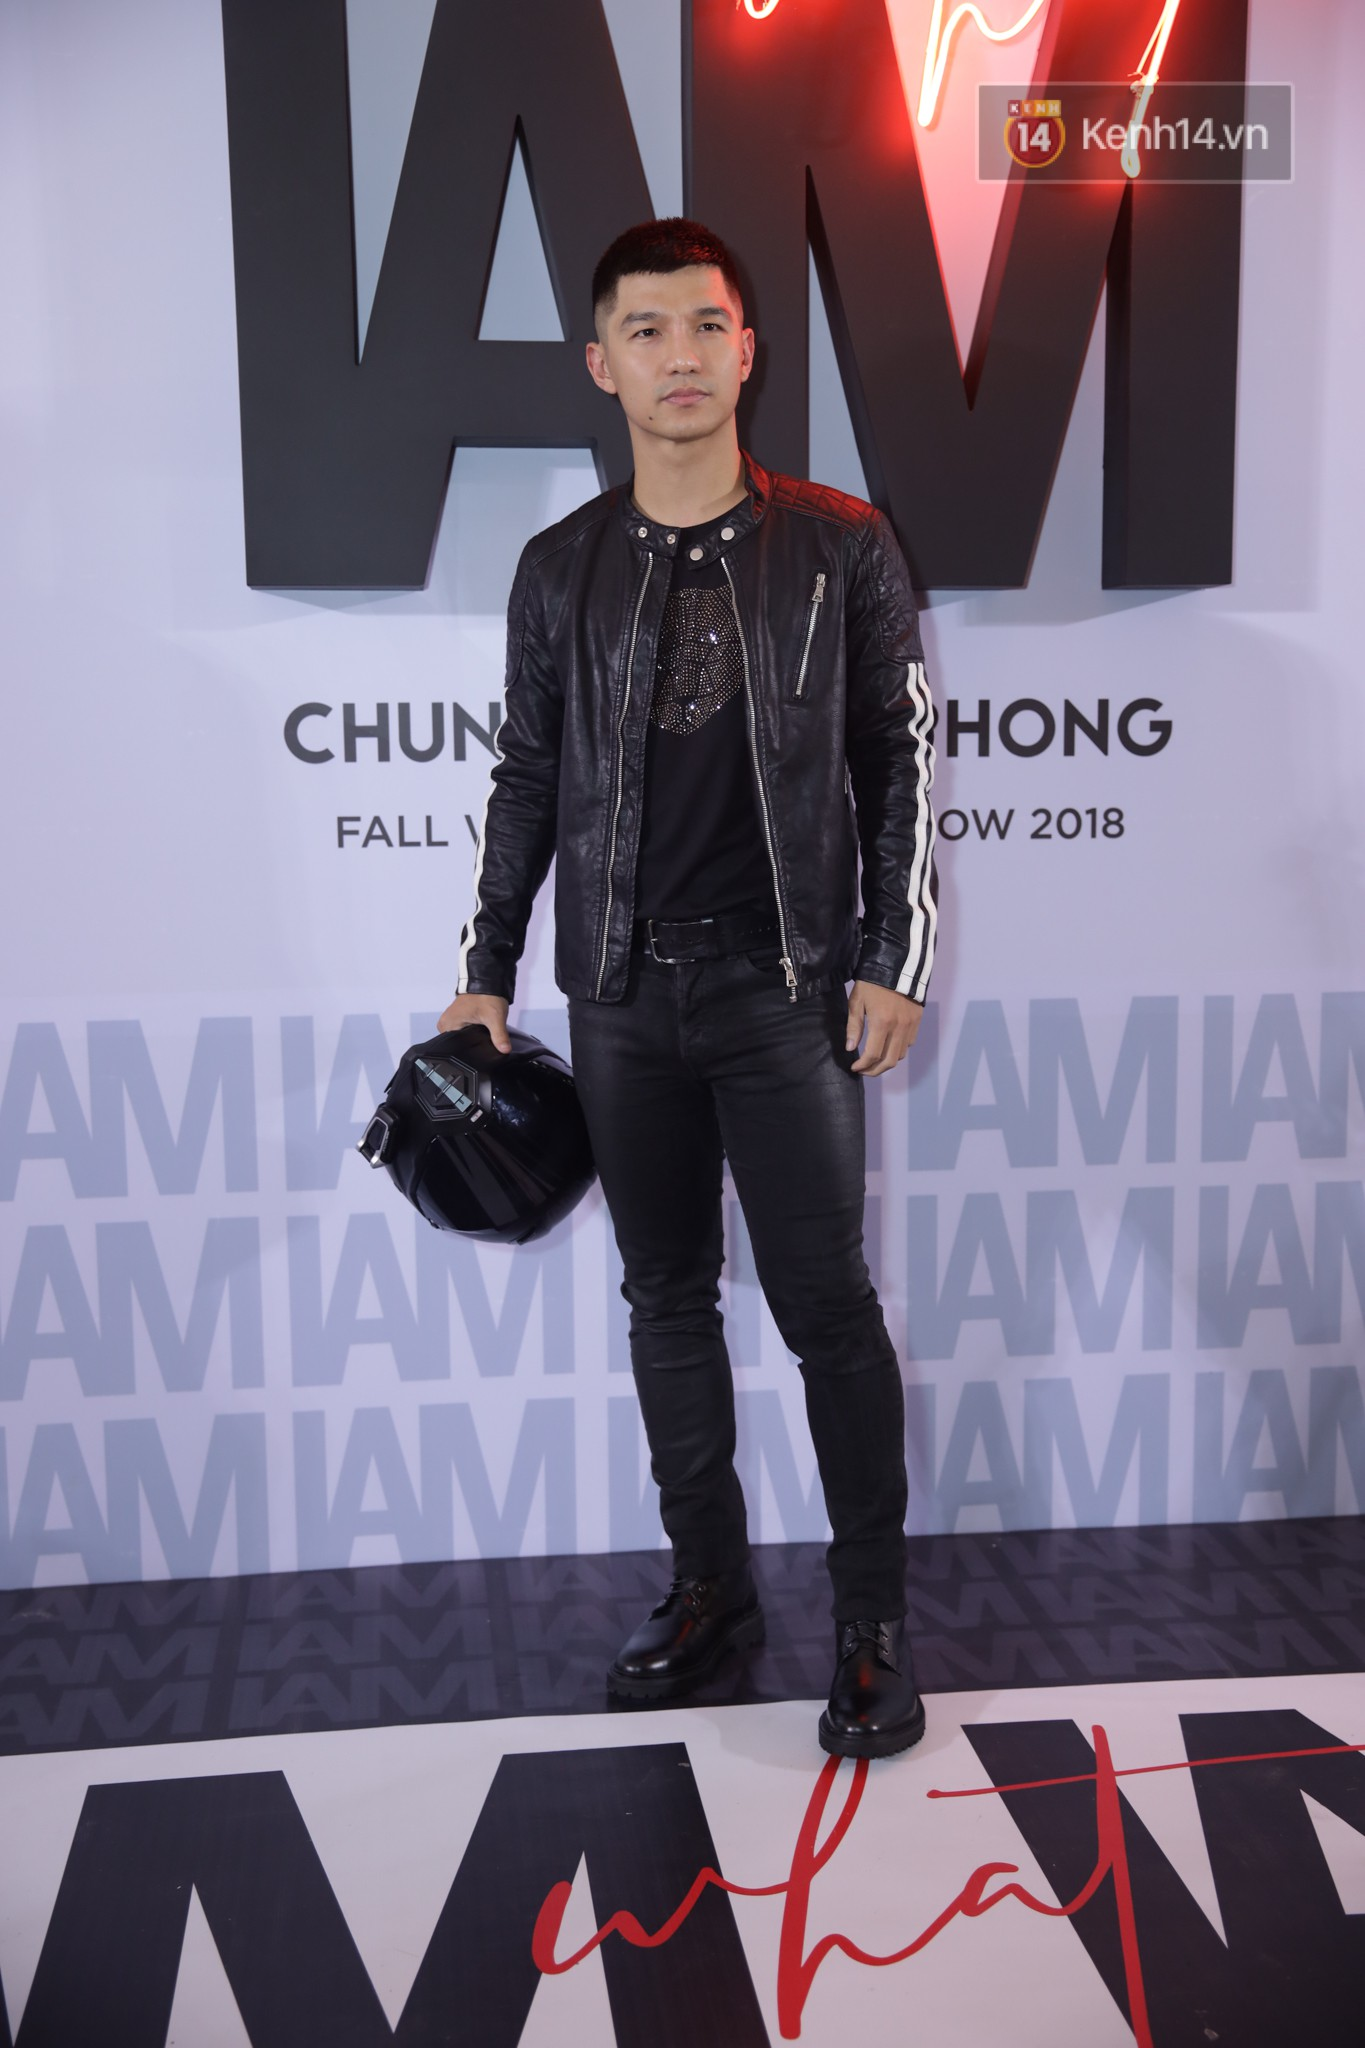 The red carpet Chung Thanh Phong show: It was able to test strange styles, Quỳnh Anh Shyn caught rain like spiders - Photo 40.